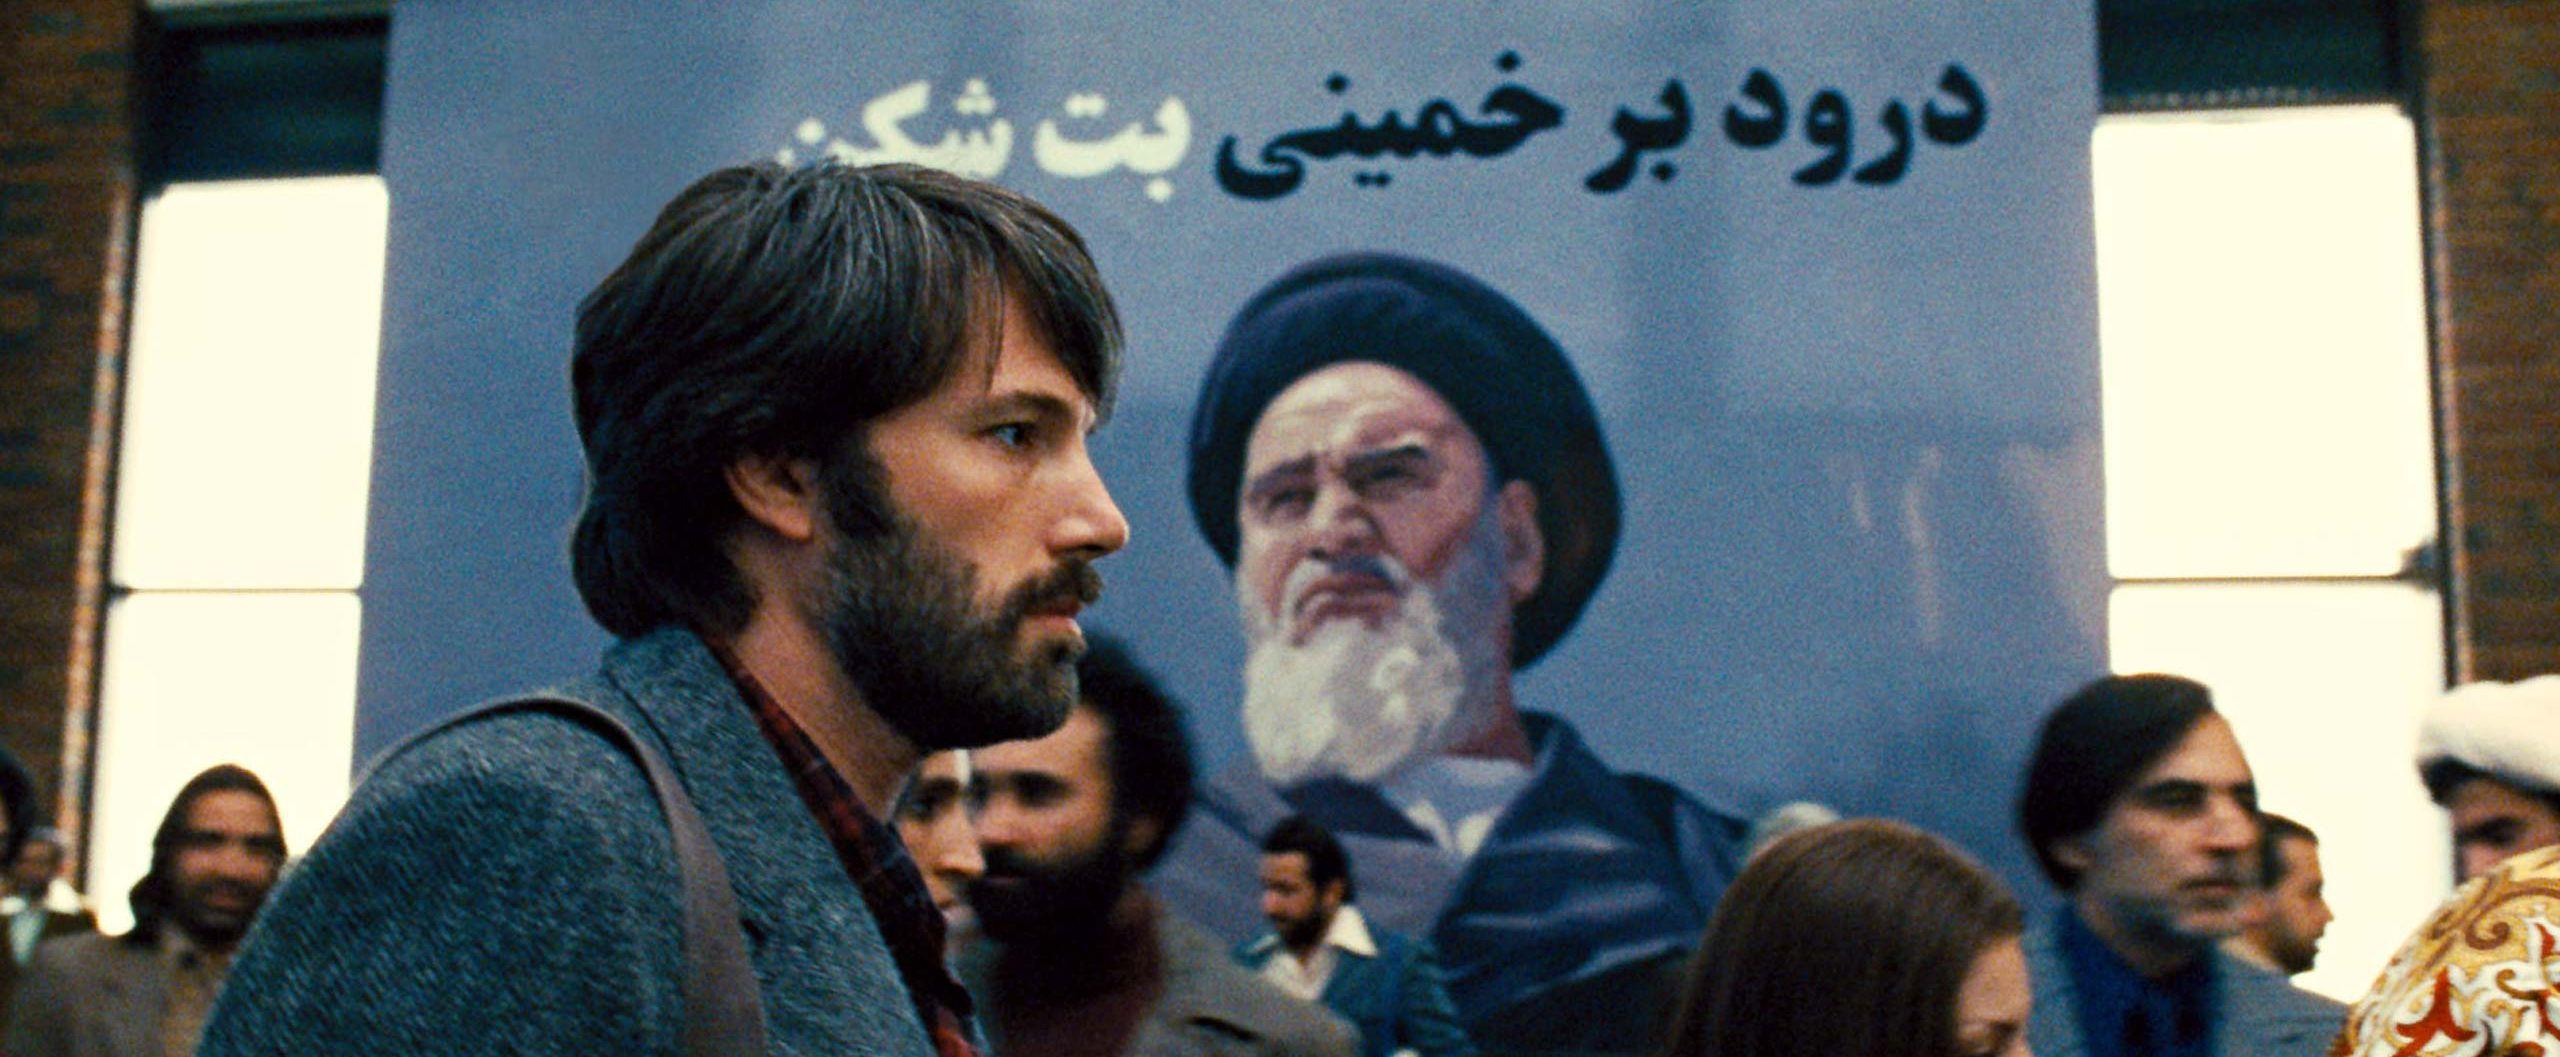 An image from Argo